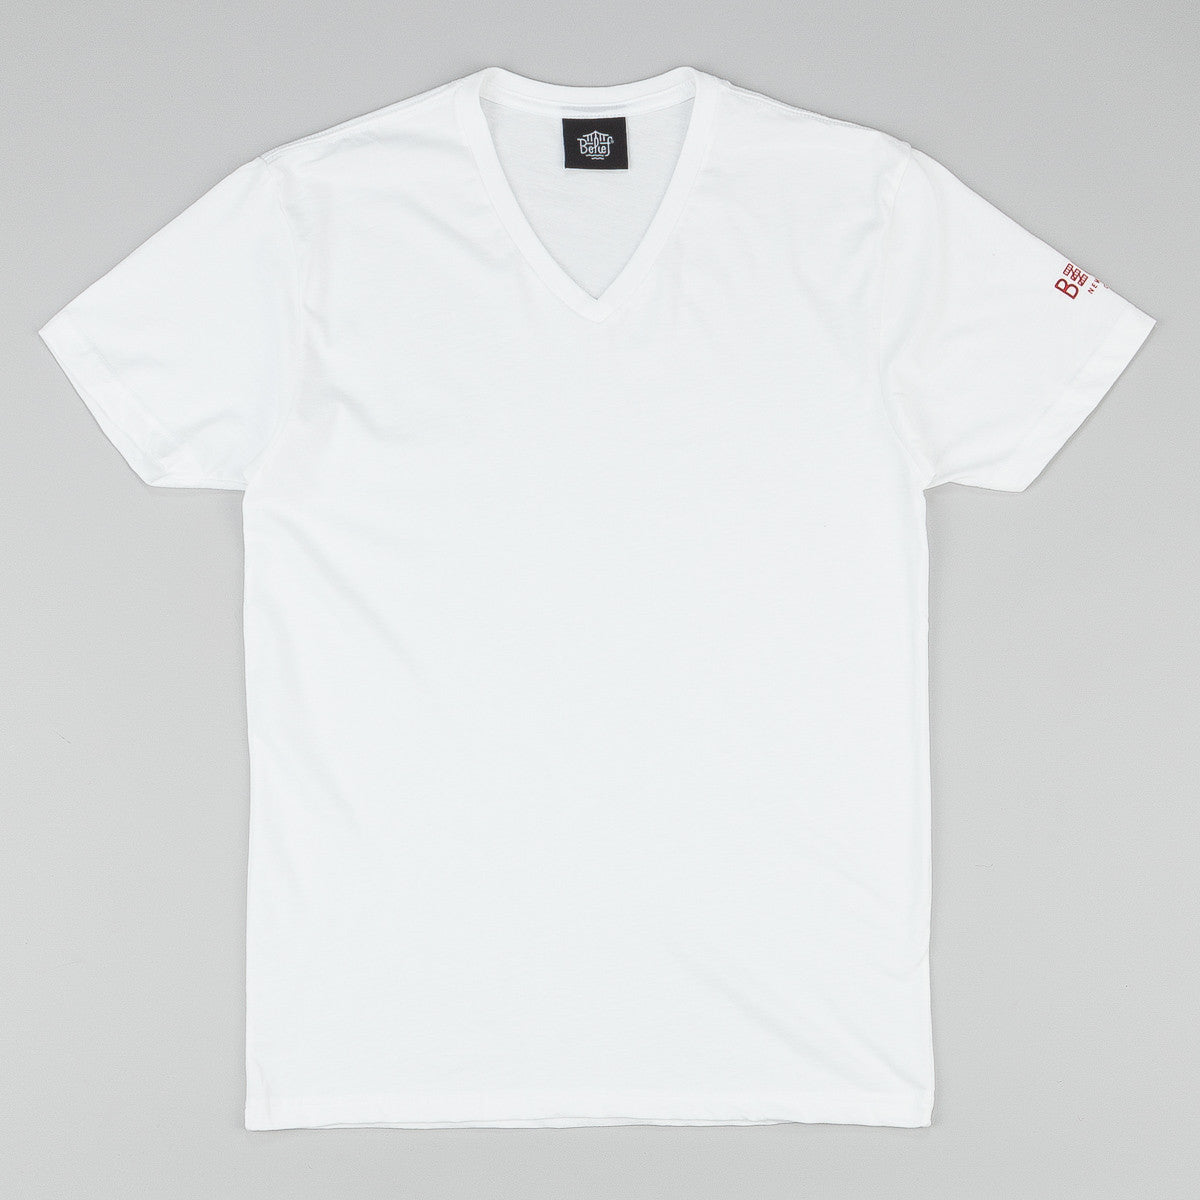 Belief City Block V-Neck T-Shirt